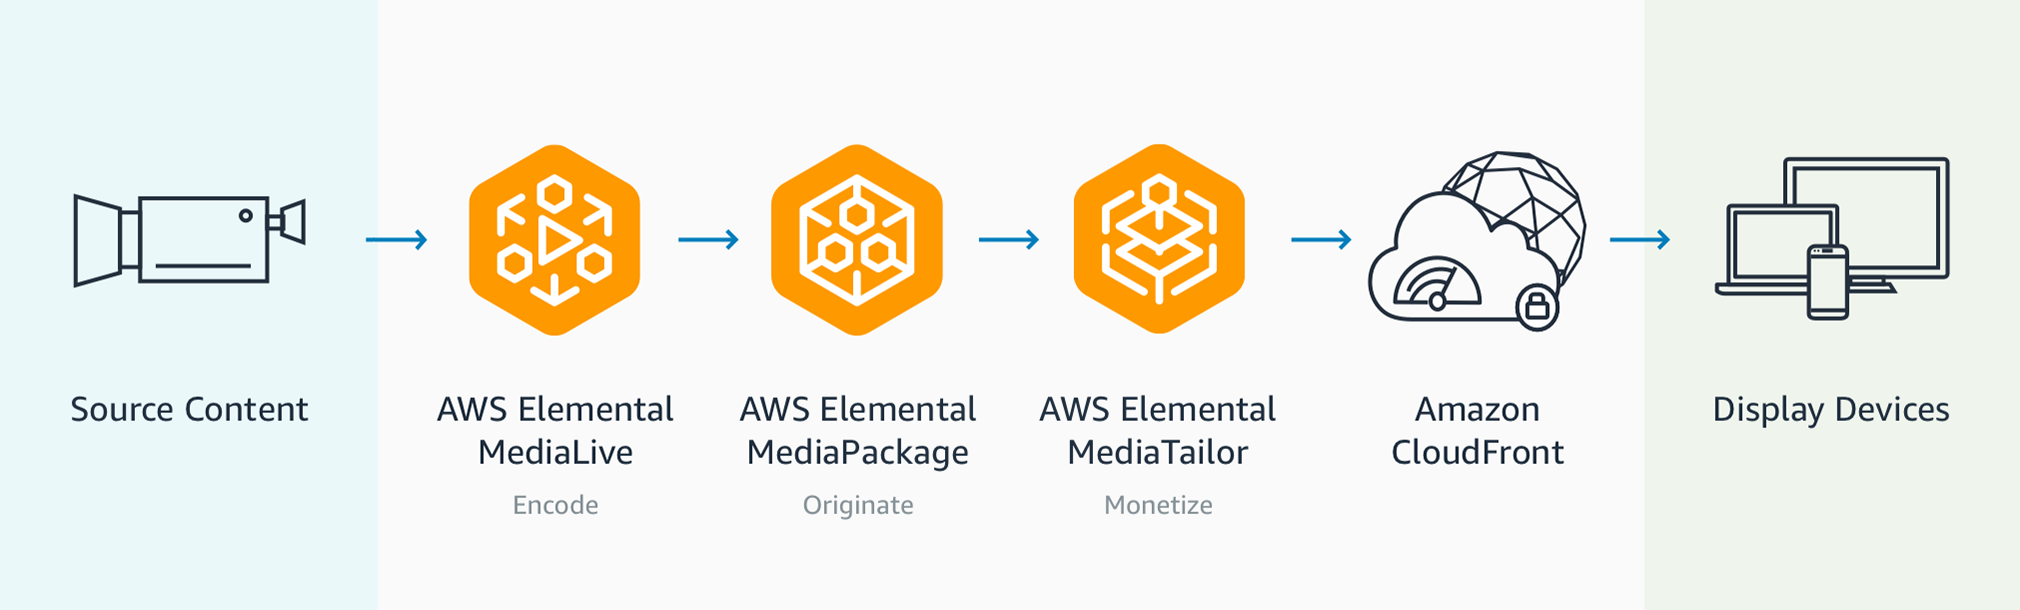 AWS Elemental Workflow 1 copy